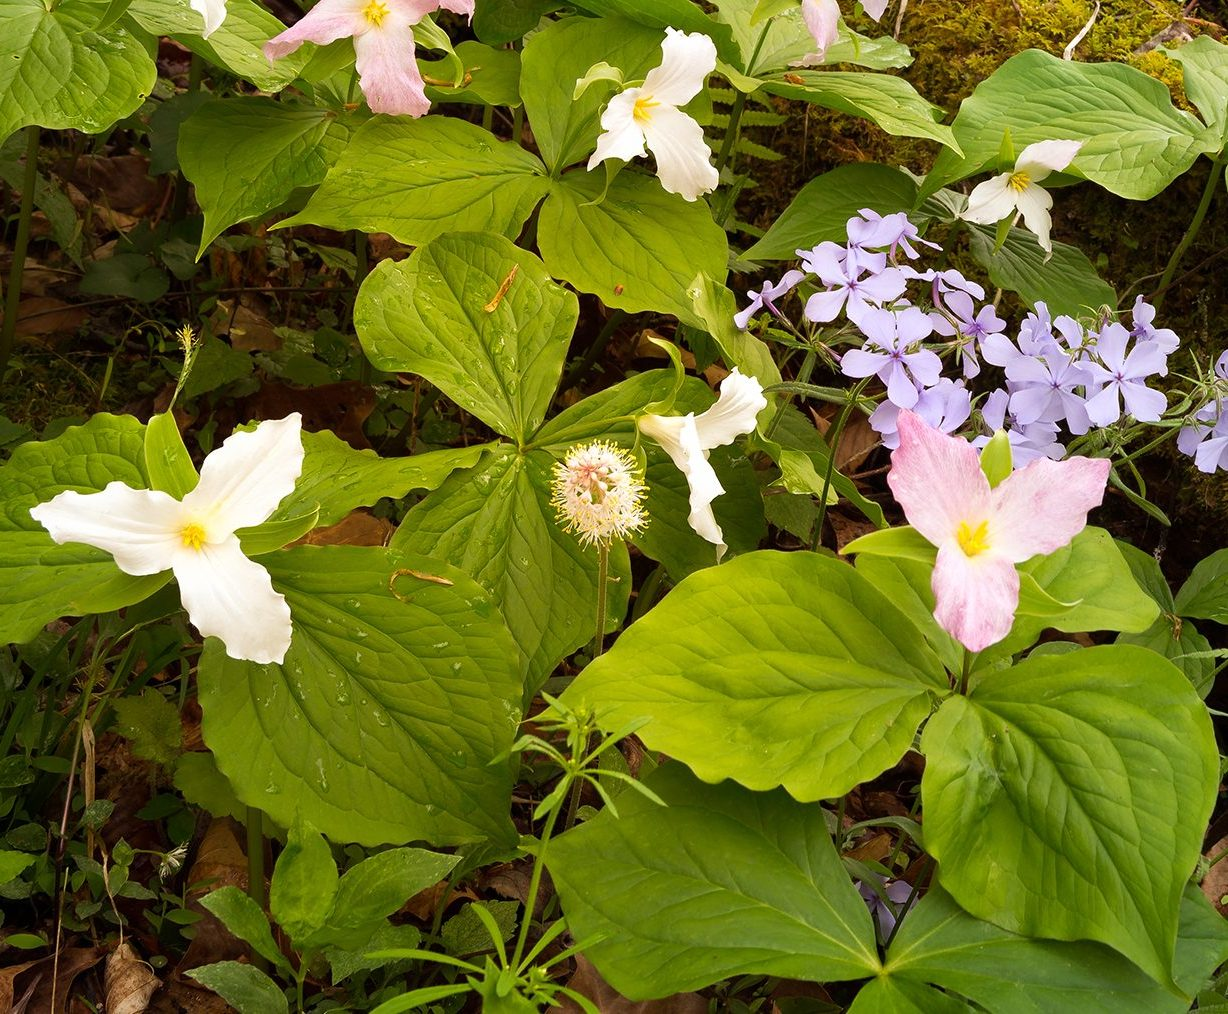 Trillium Flowers And Moss Covered Log Edge Of The Woods Native